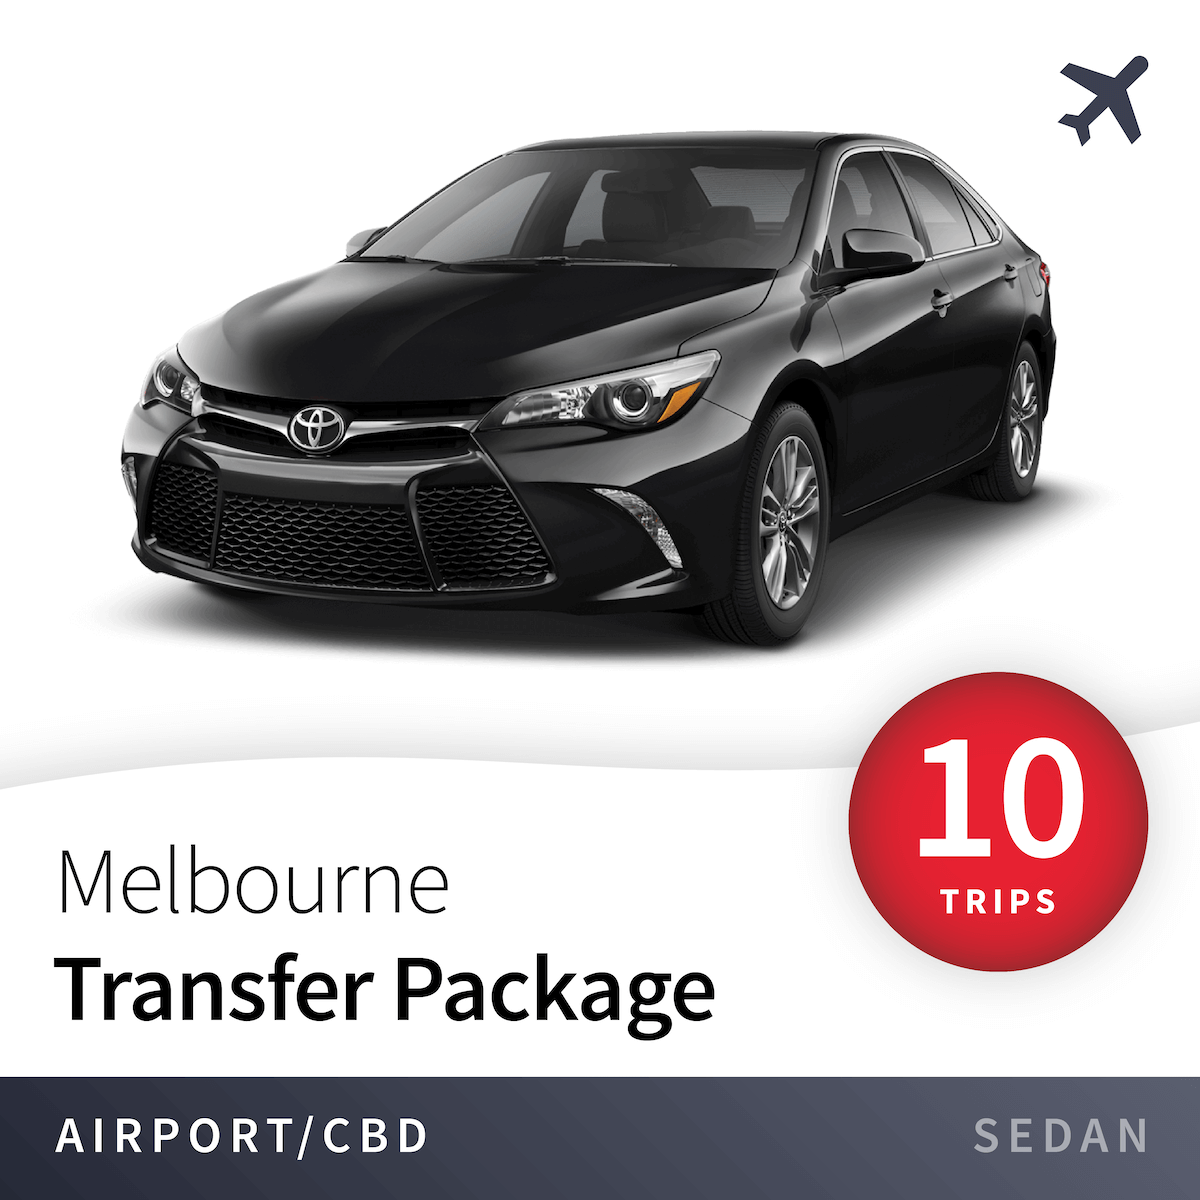 Melbourne Airport Transfer Package - Sedan (10 Trips) 6